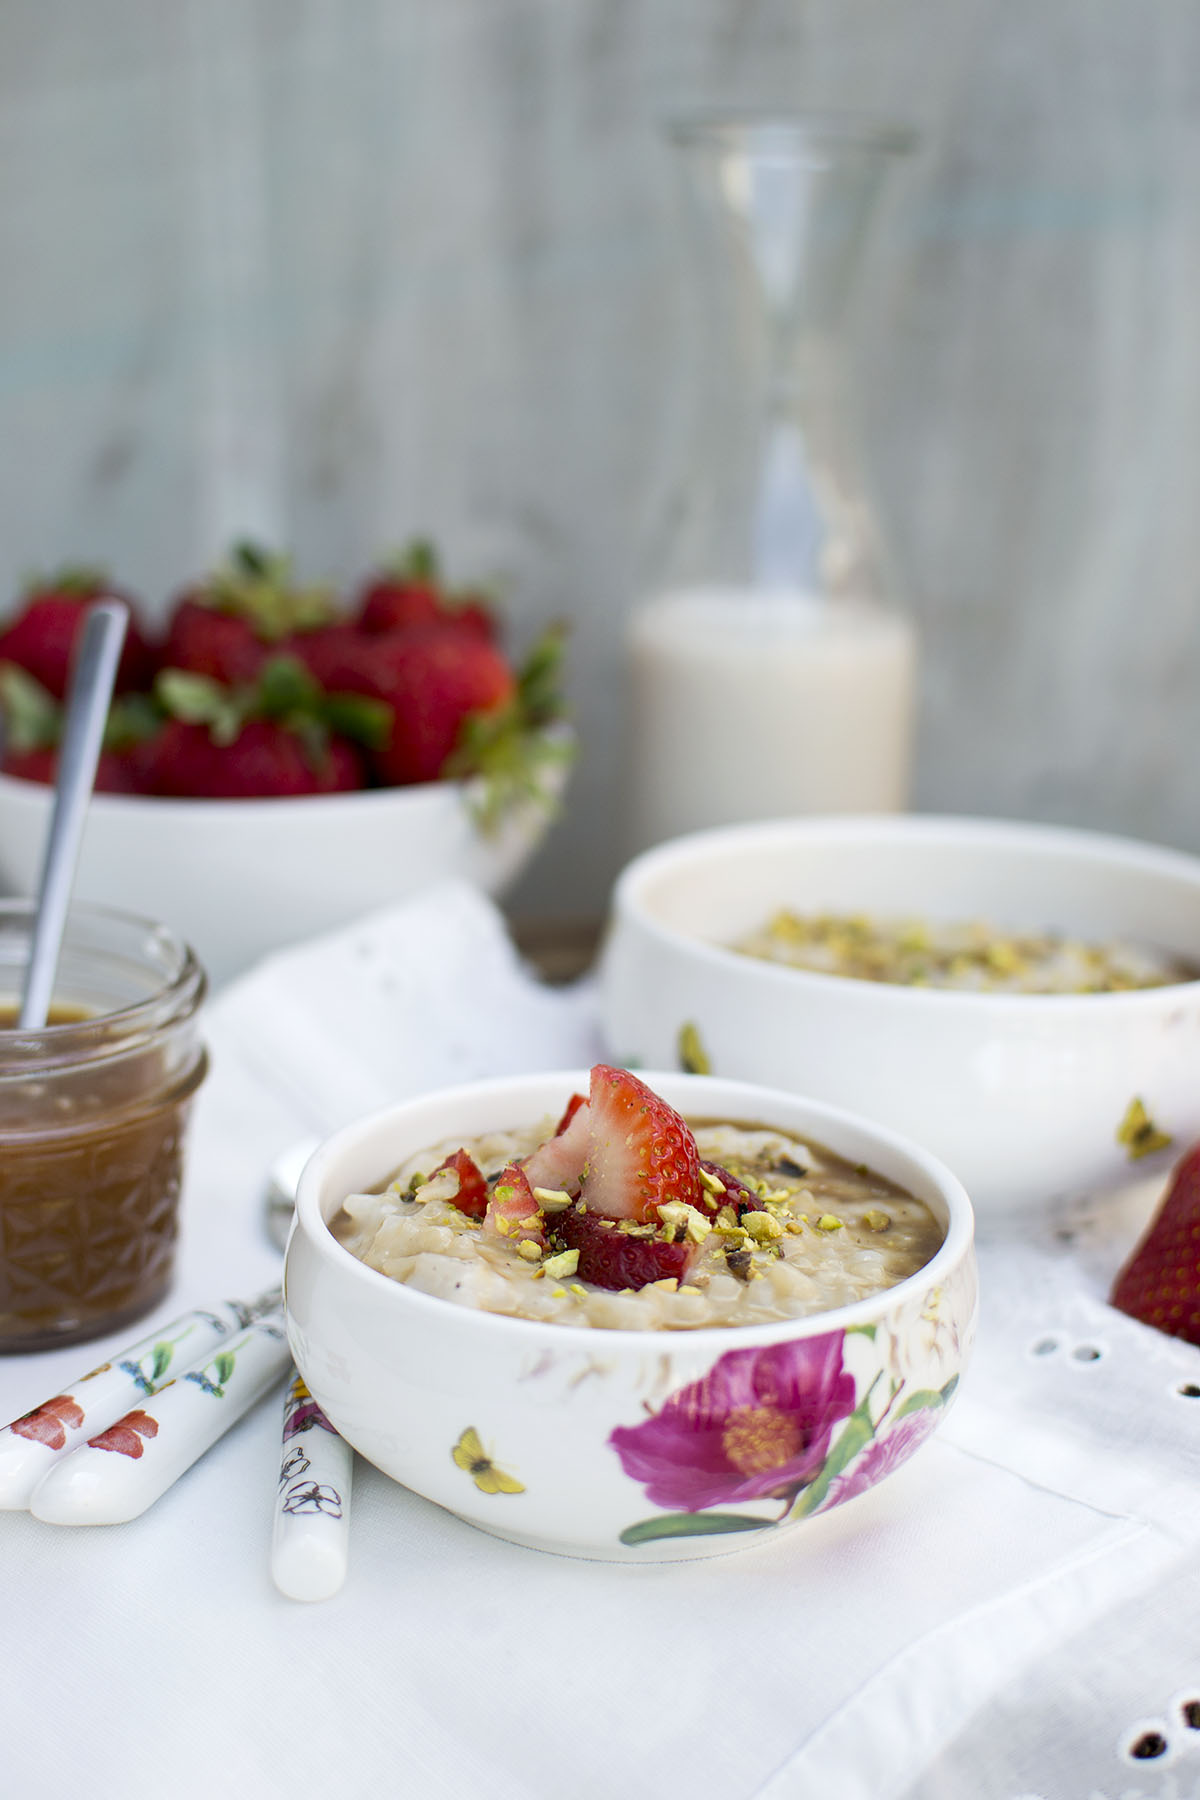 White bowl with rice pudding topped with chopped berries and nuts